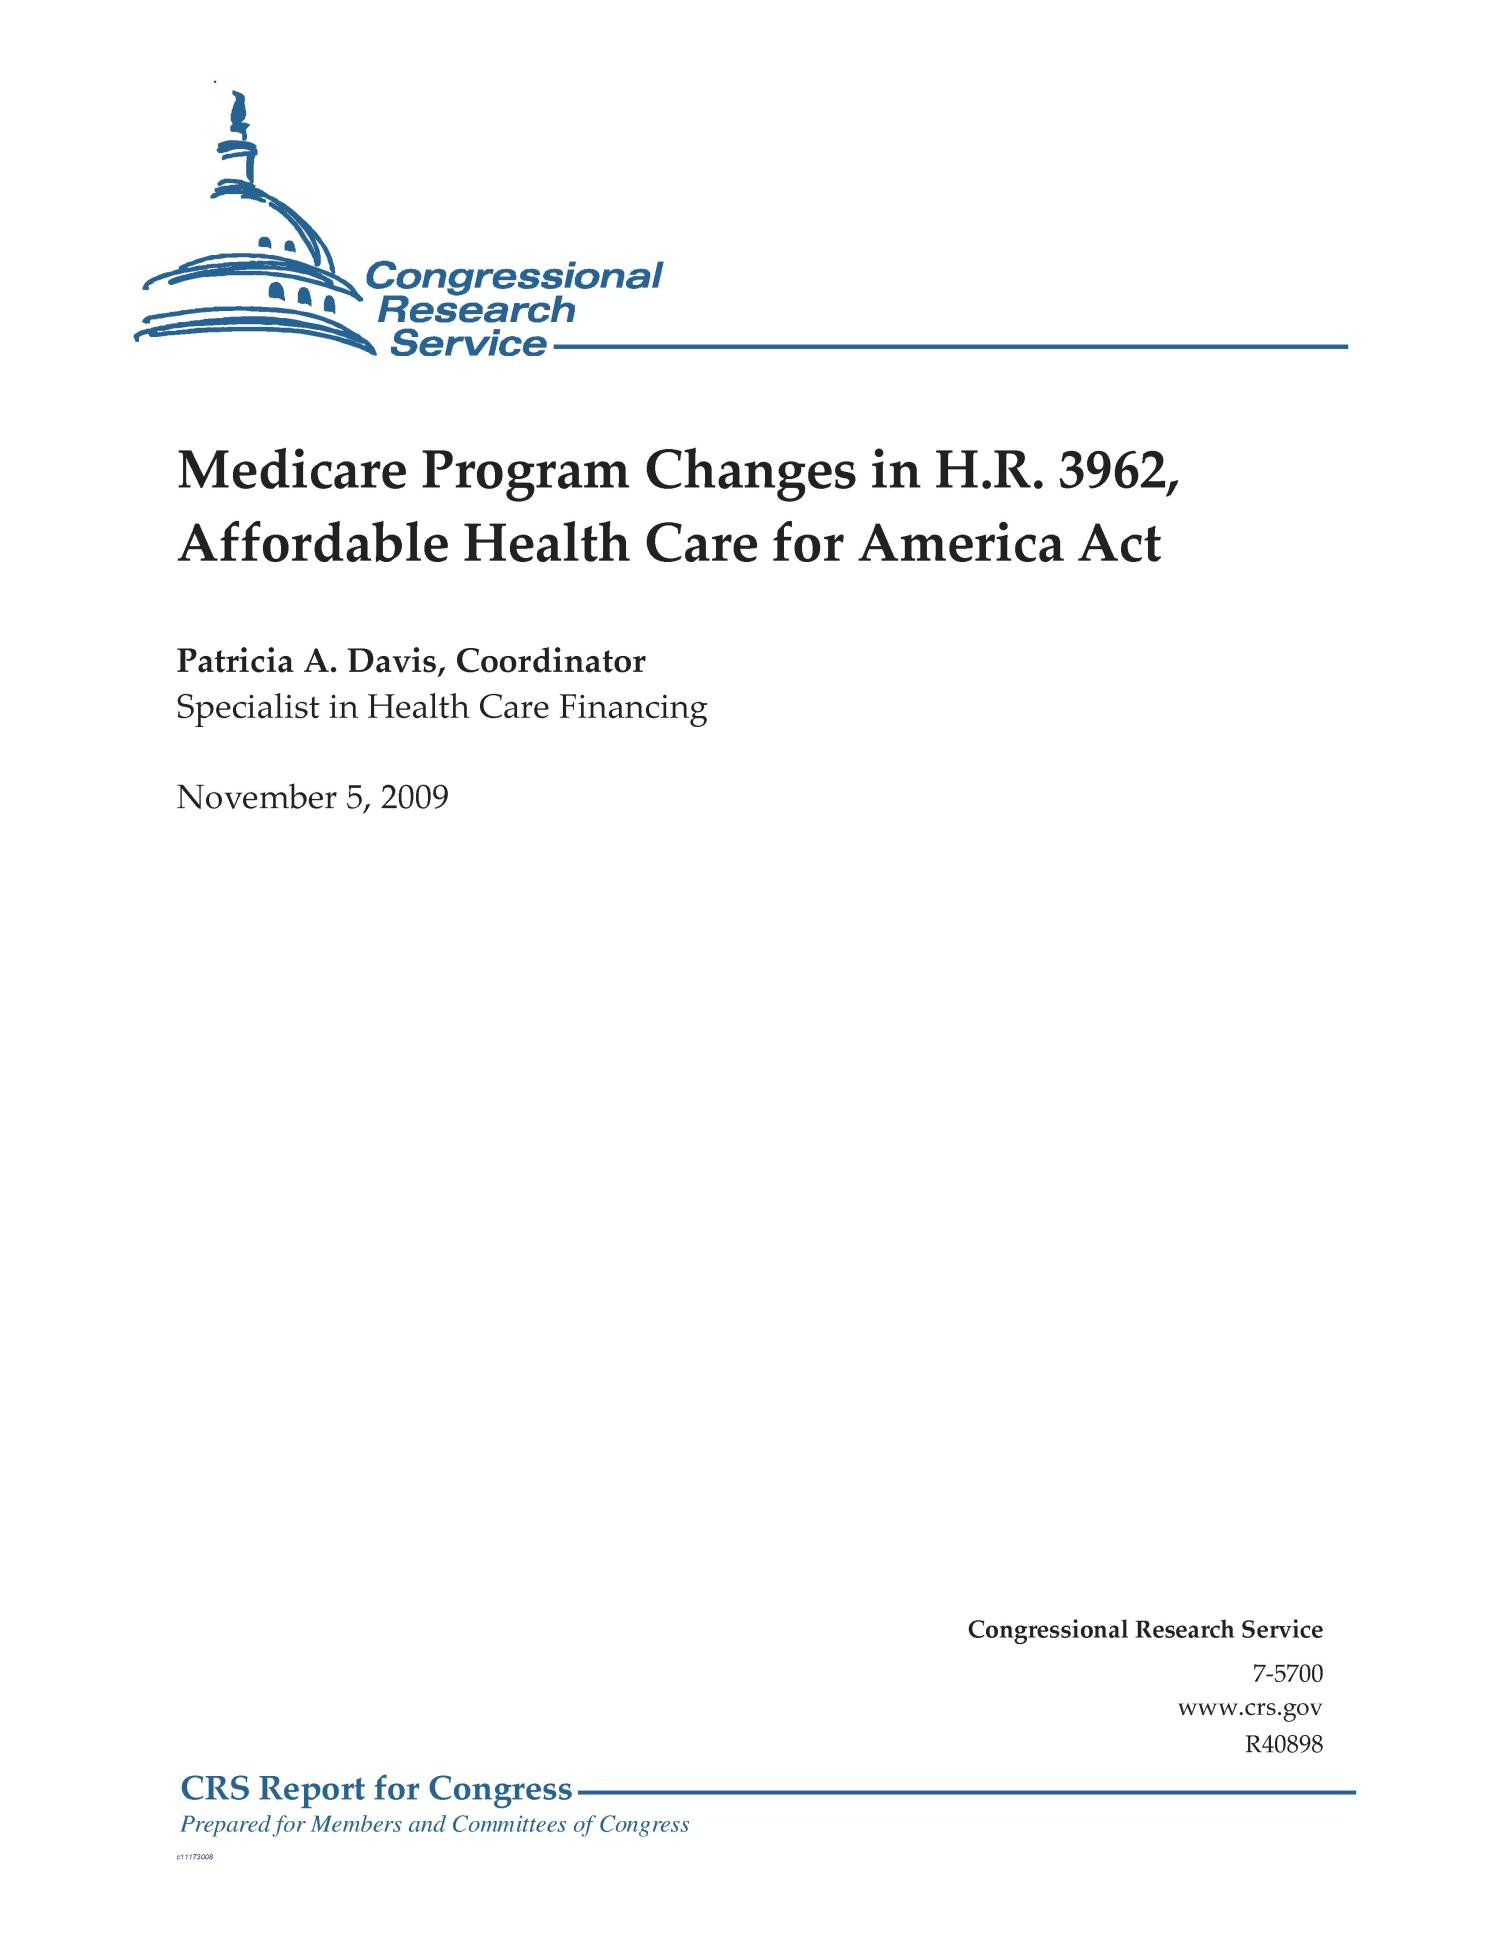 Medicare Program Changes in H.R. 3962, Affordable Health Care for America Act                                                                                                      [Sequence #]: 1 of 66